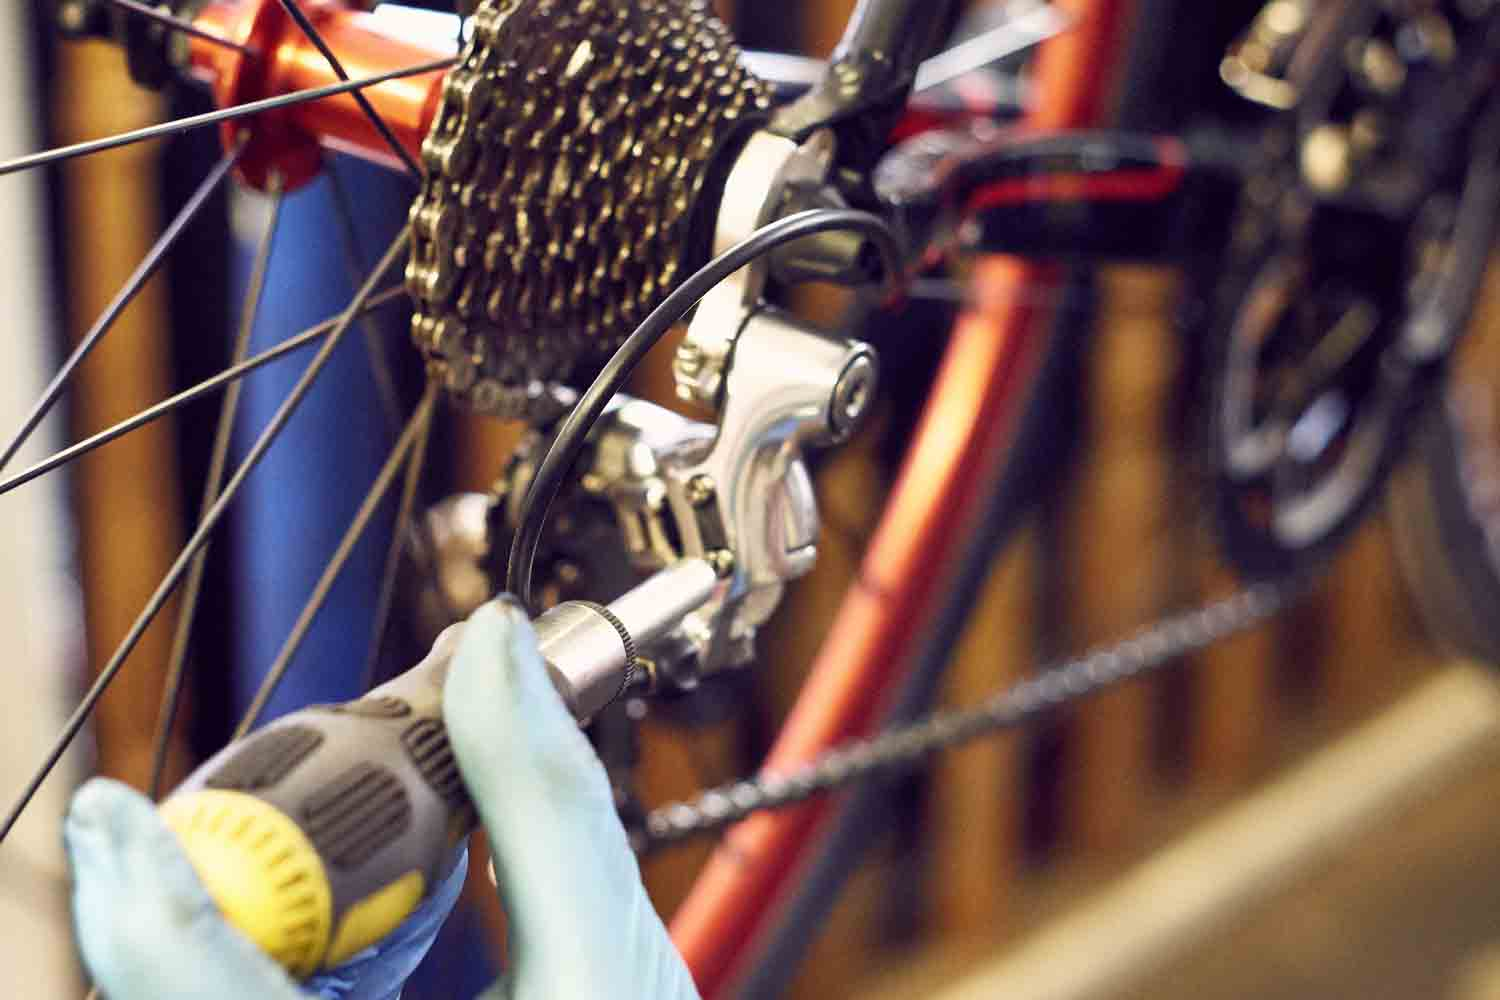 Dolgellau Cycles Bike Repair